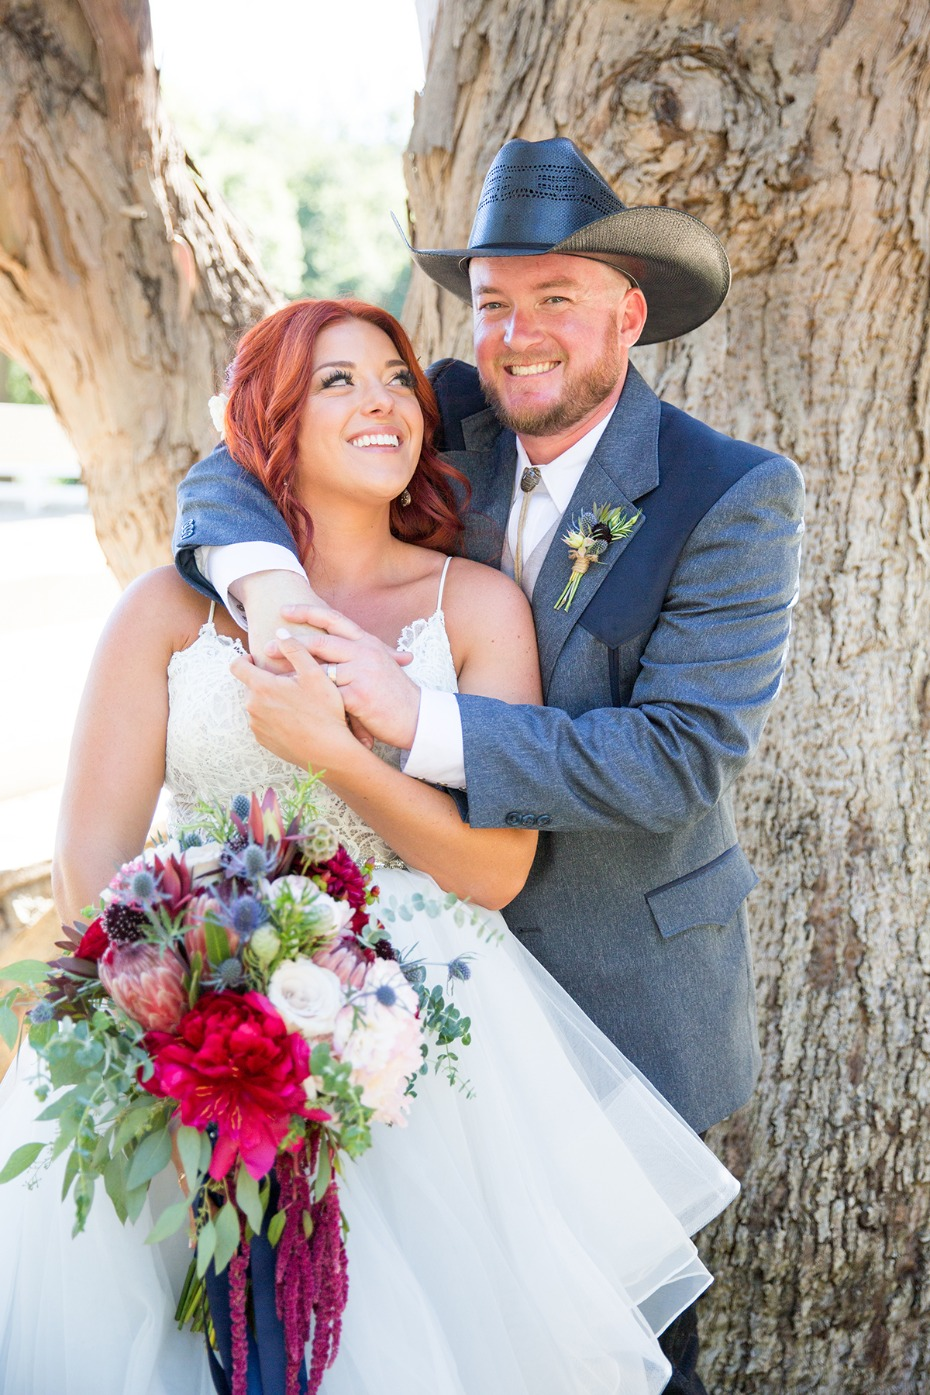 classic country wedding couple style